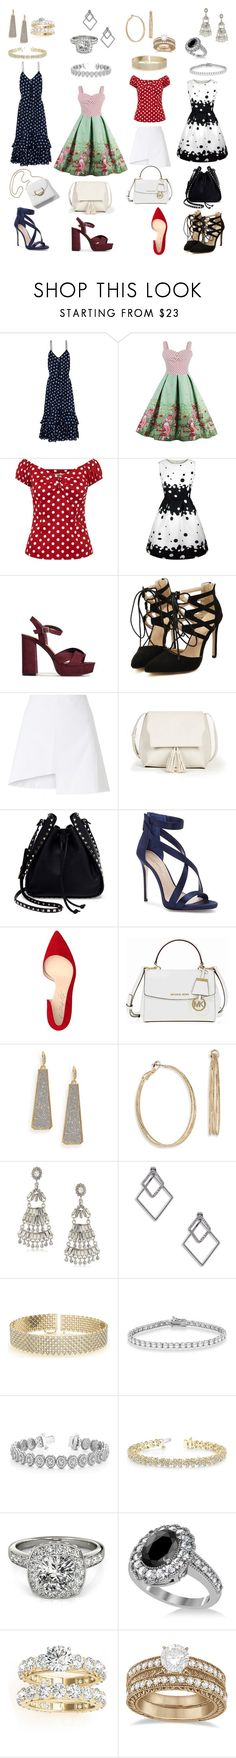 """""""Shout Out To My Ex"""" by kathrina1yana2jemma3cloe4 ❤ liked on Polyvore featuring Boutique Moschino, WithChic, WÃ¥ven, Sole Society, Valentino, Imagine by Vince Camuto, Shoes of Prey, Michael Kors, ABS by Allen Schwartz and Allurez"""